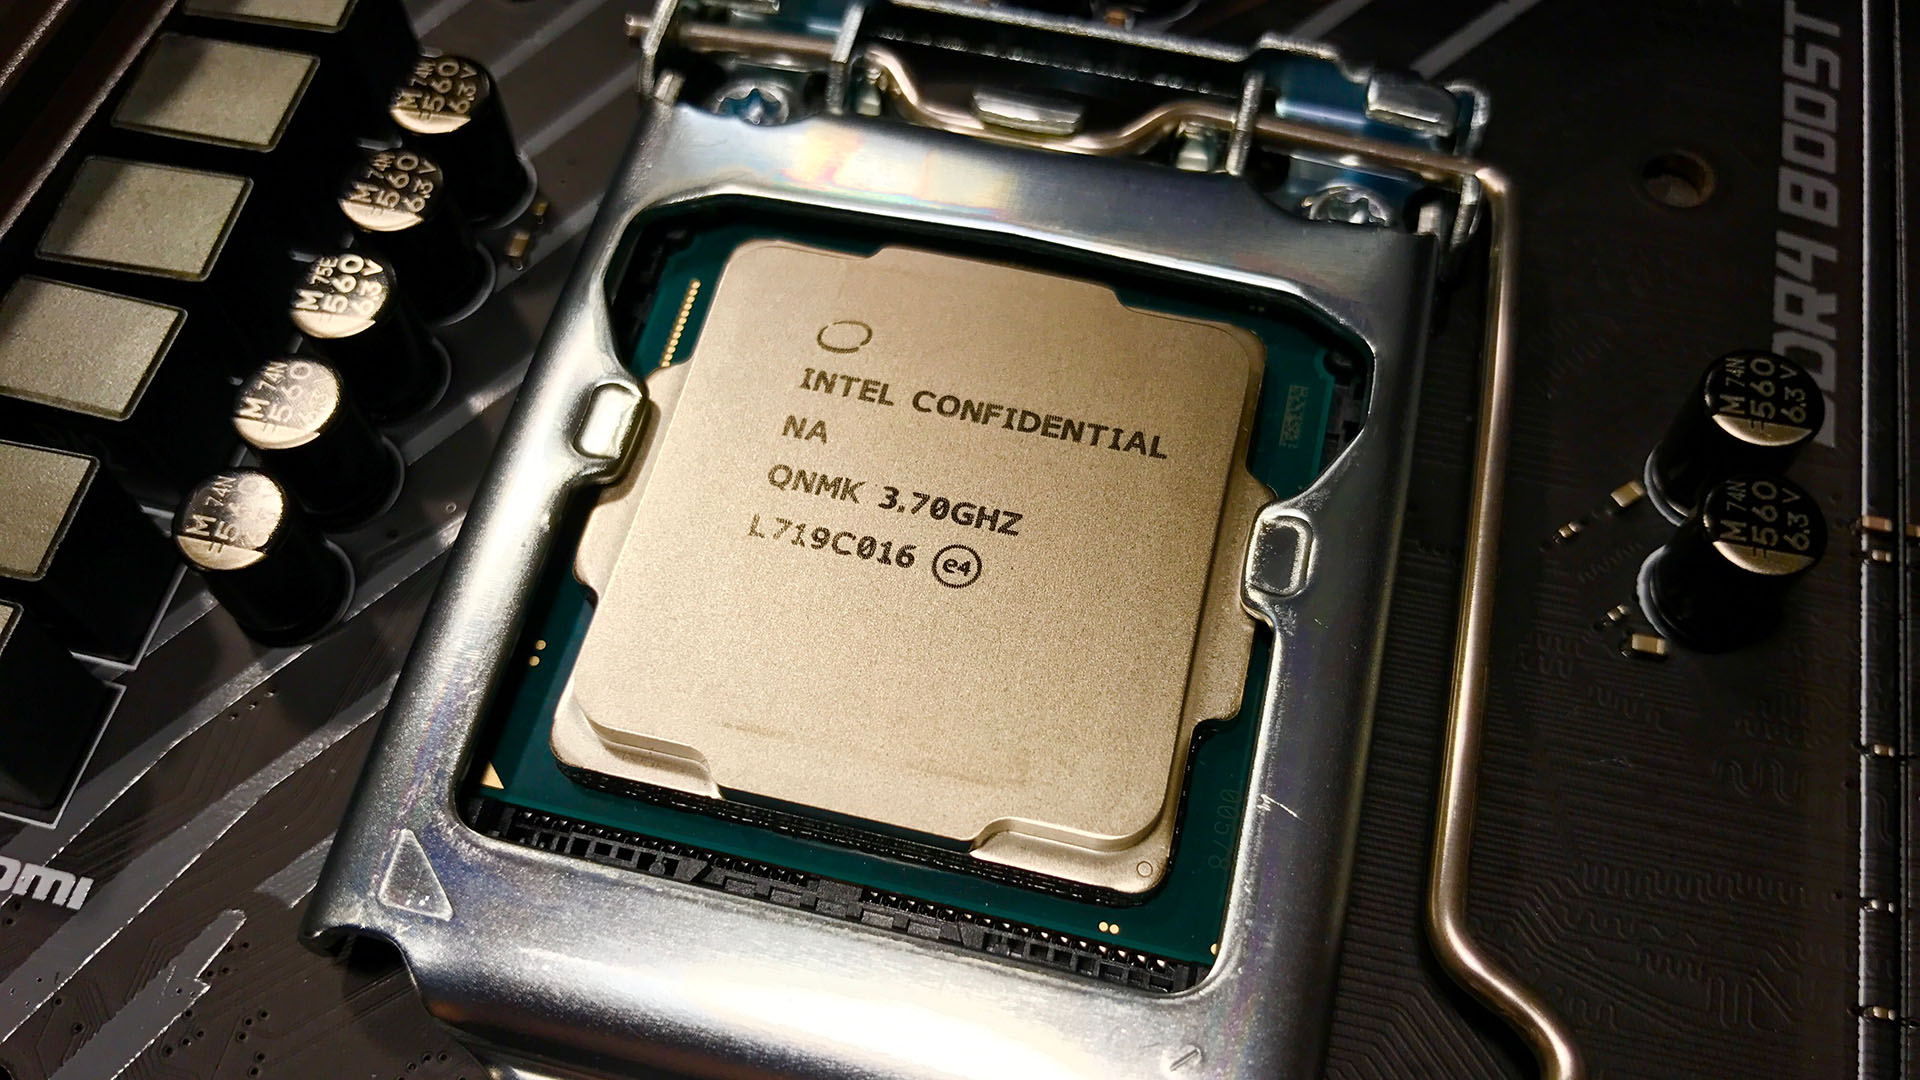 Photograph of a naked CPU in a motherboard socket.